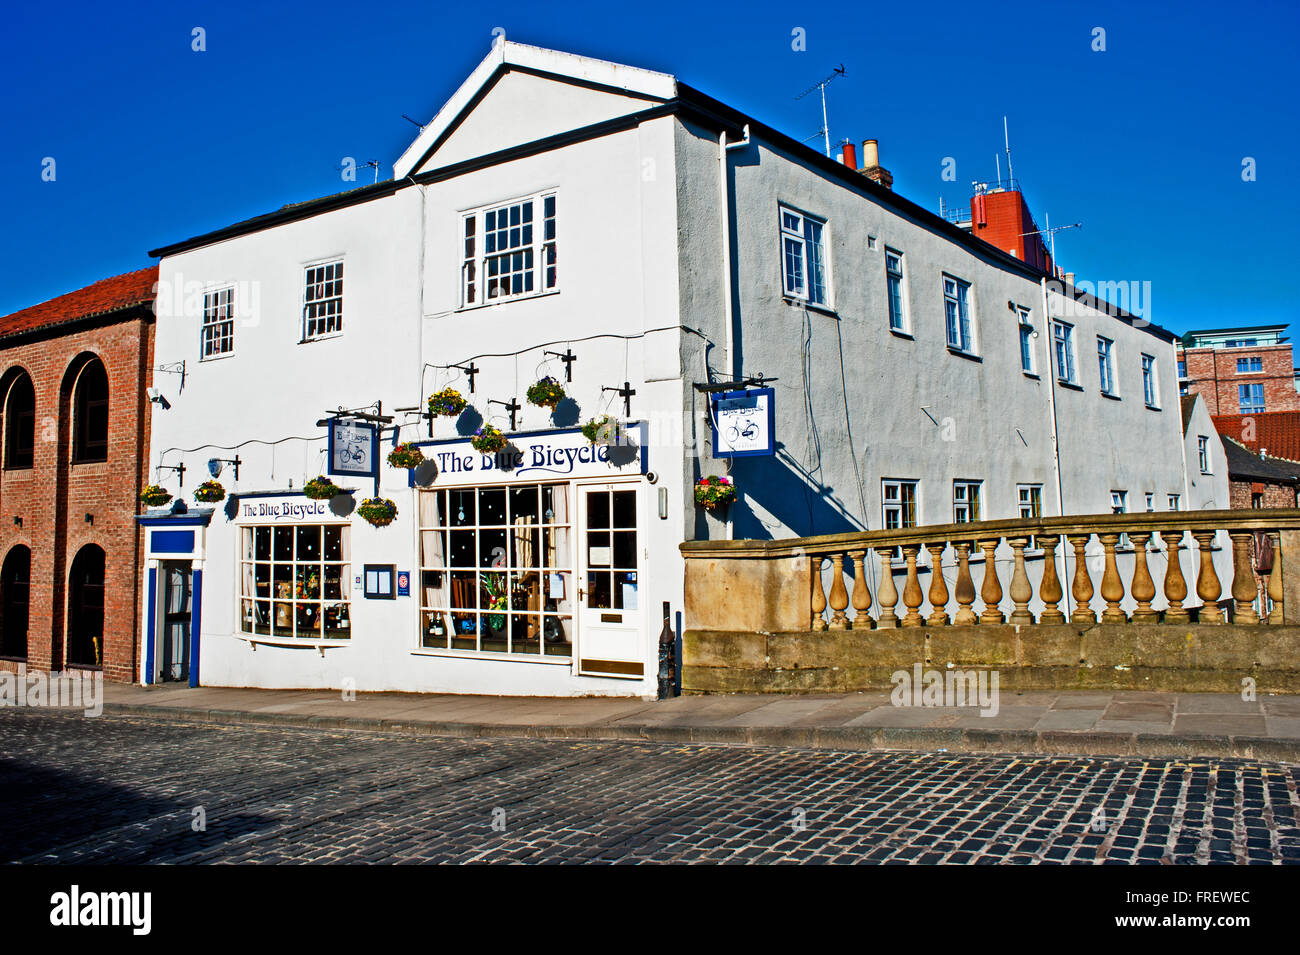 The Blue Bicycle, Fossgate, York - Stock Image